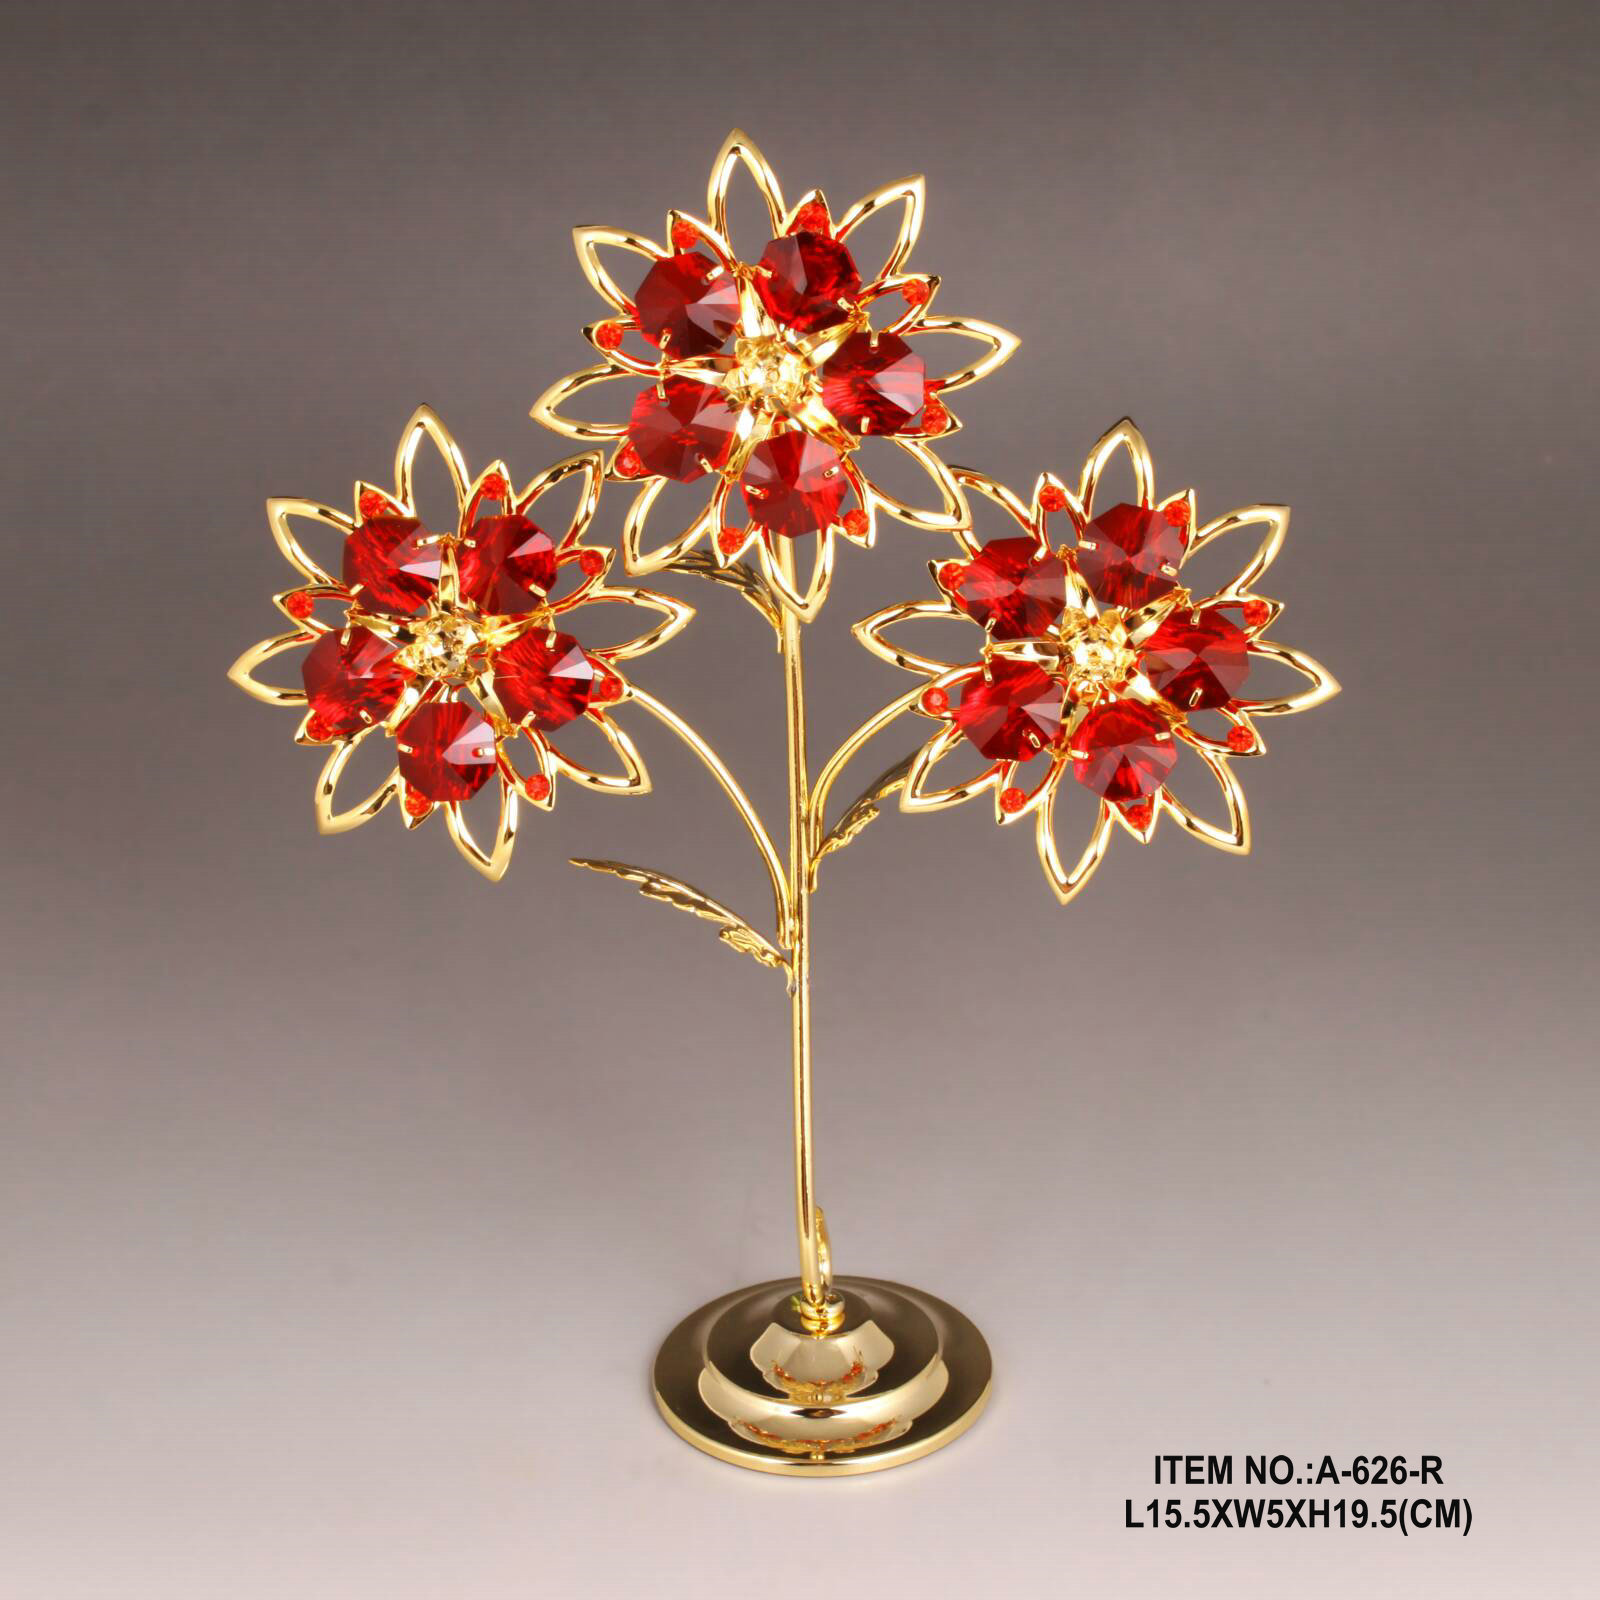 High End Gold Plated Metal Red Flower with crystals